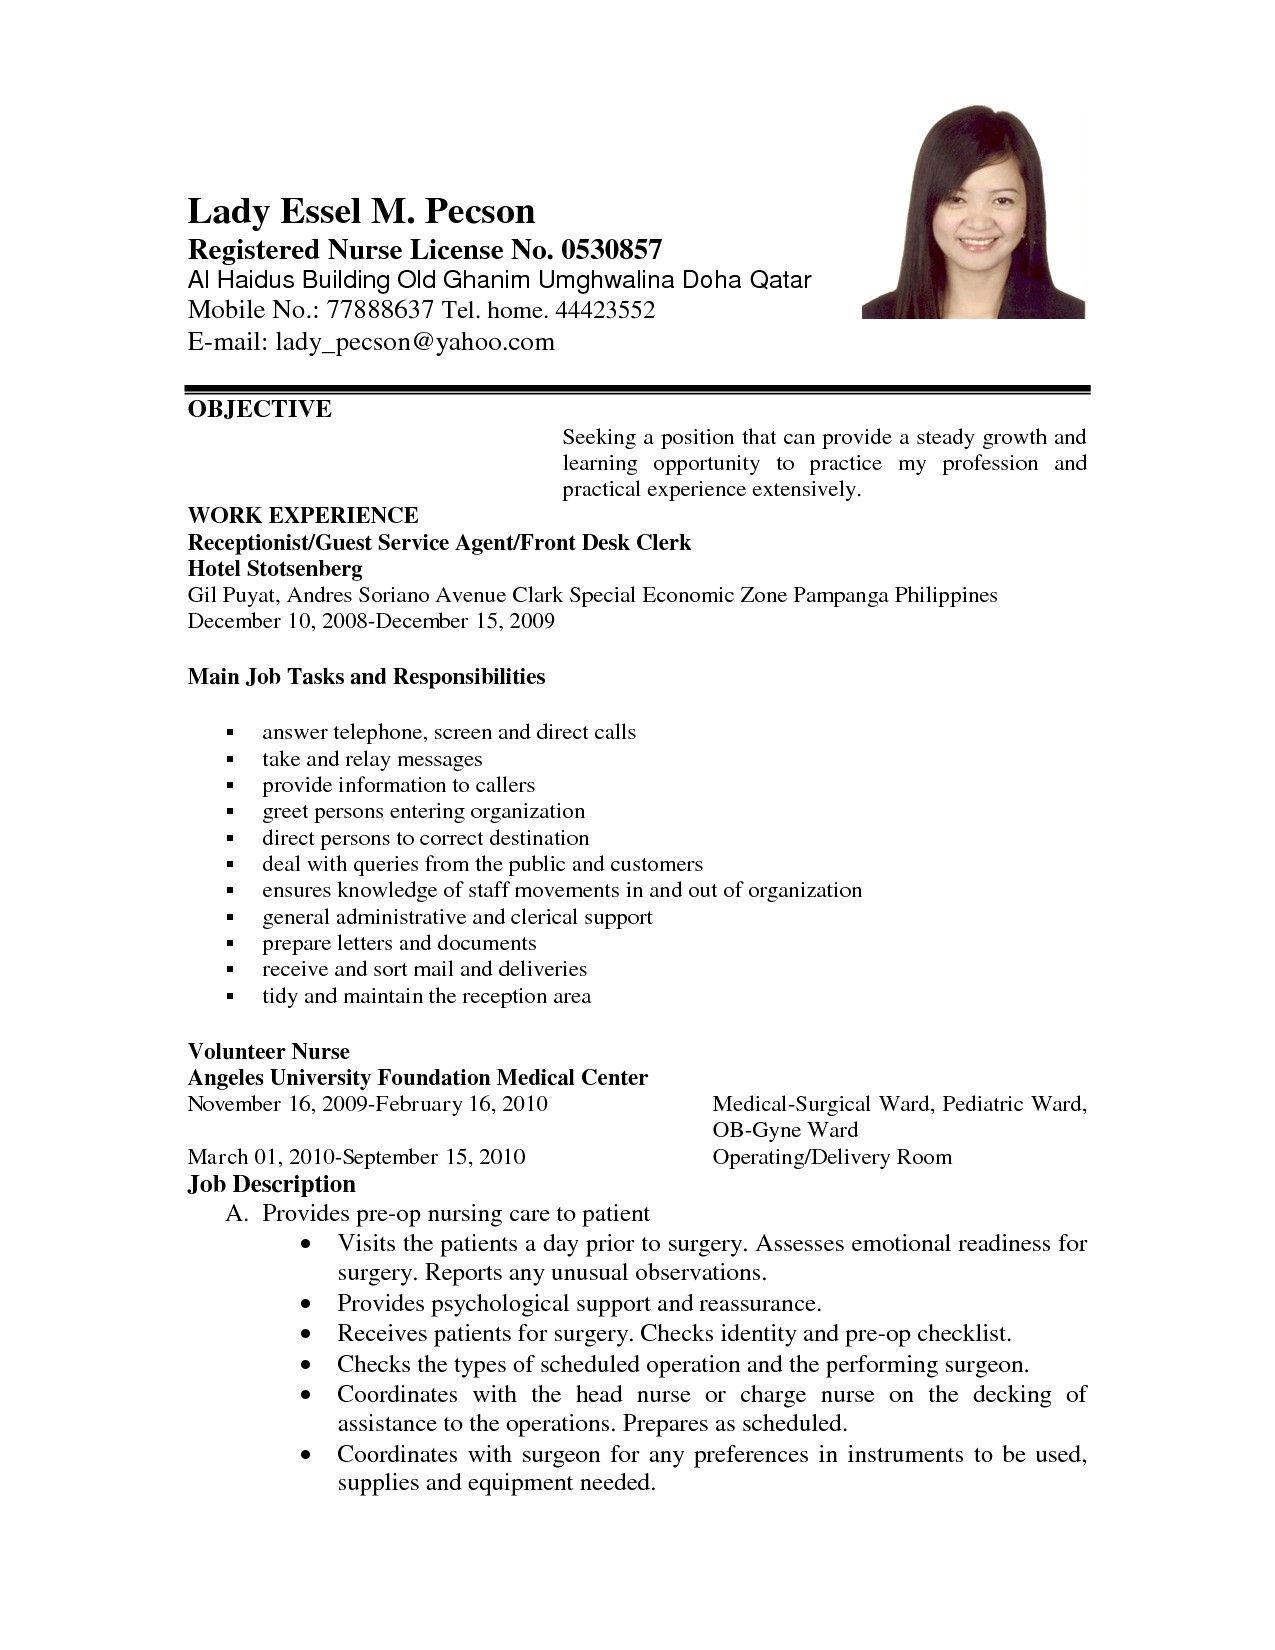 career objective resume examples awesome example applying for job of objectives cover Resume Resume Cover Letter Objective